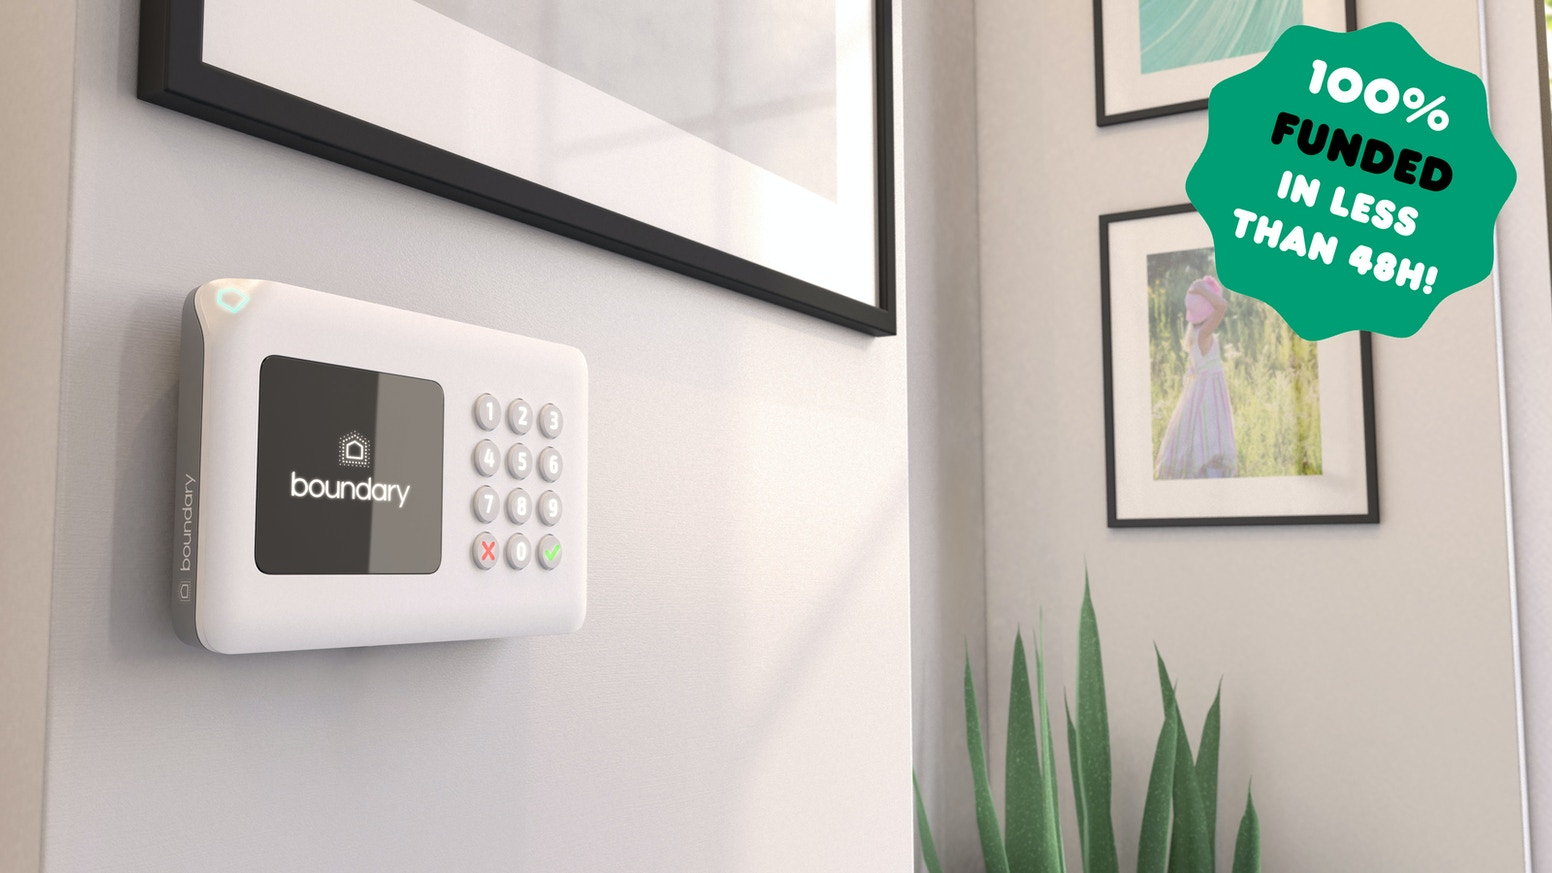 Boundary will offer a state-of-the-art alarm system which you can install yourself, self-monitor and control with your phone.